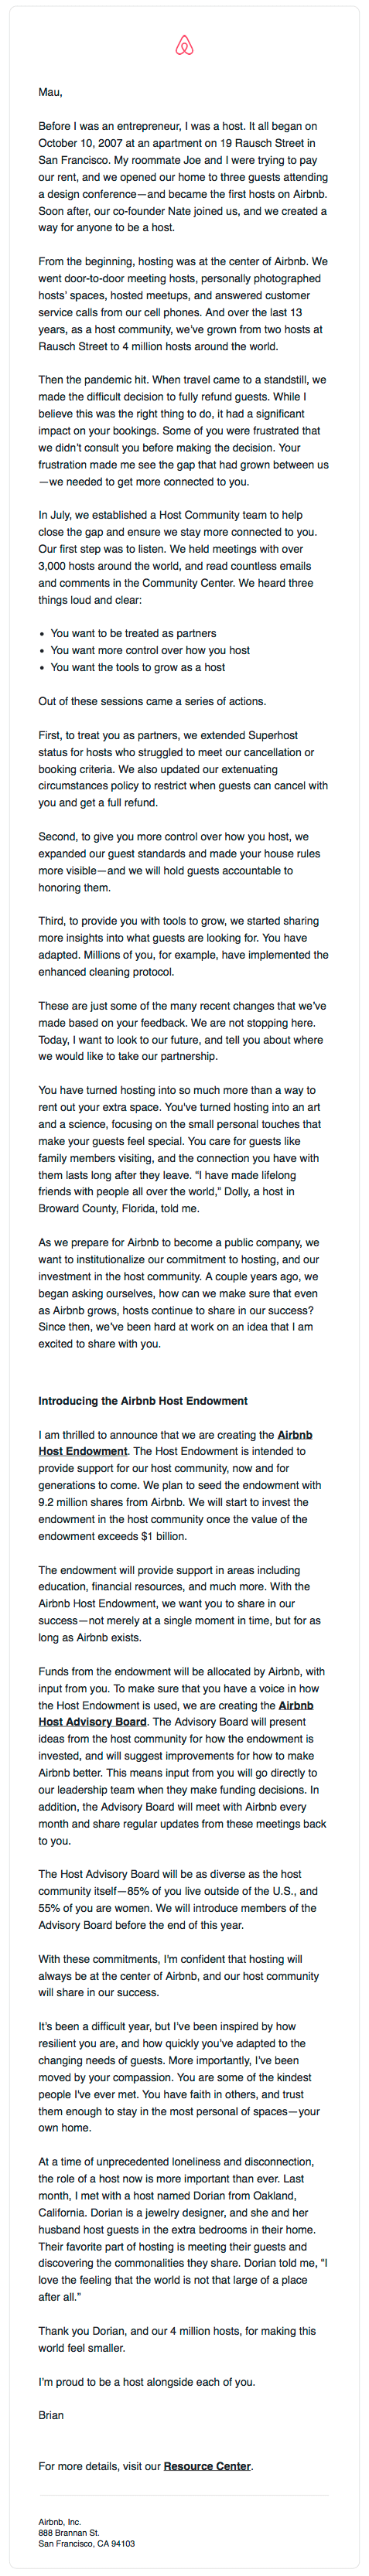 Product launch email template - Endowment announcement airbnb